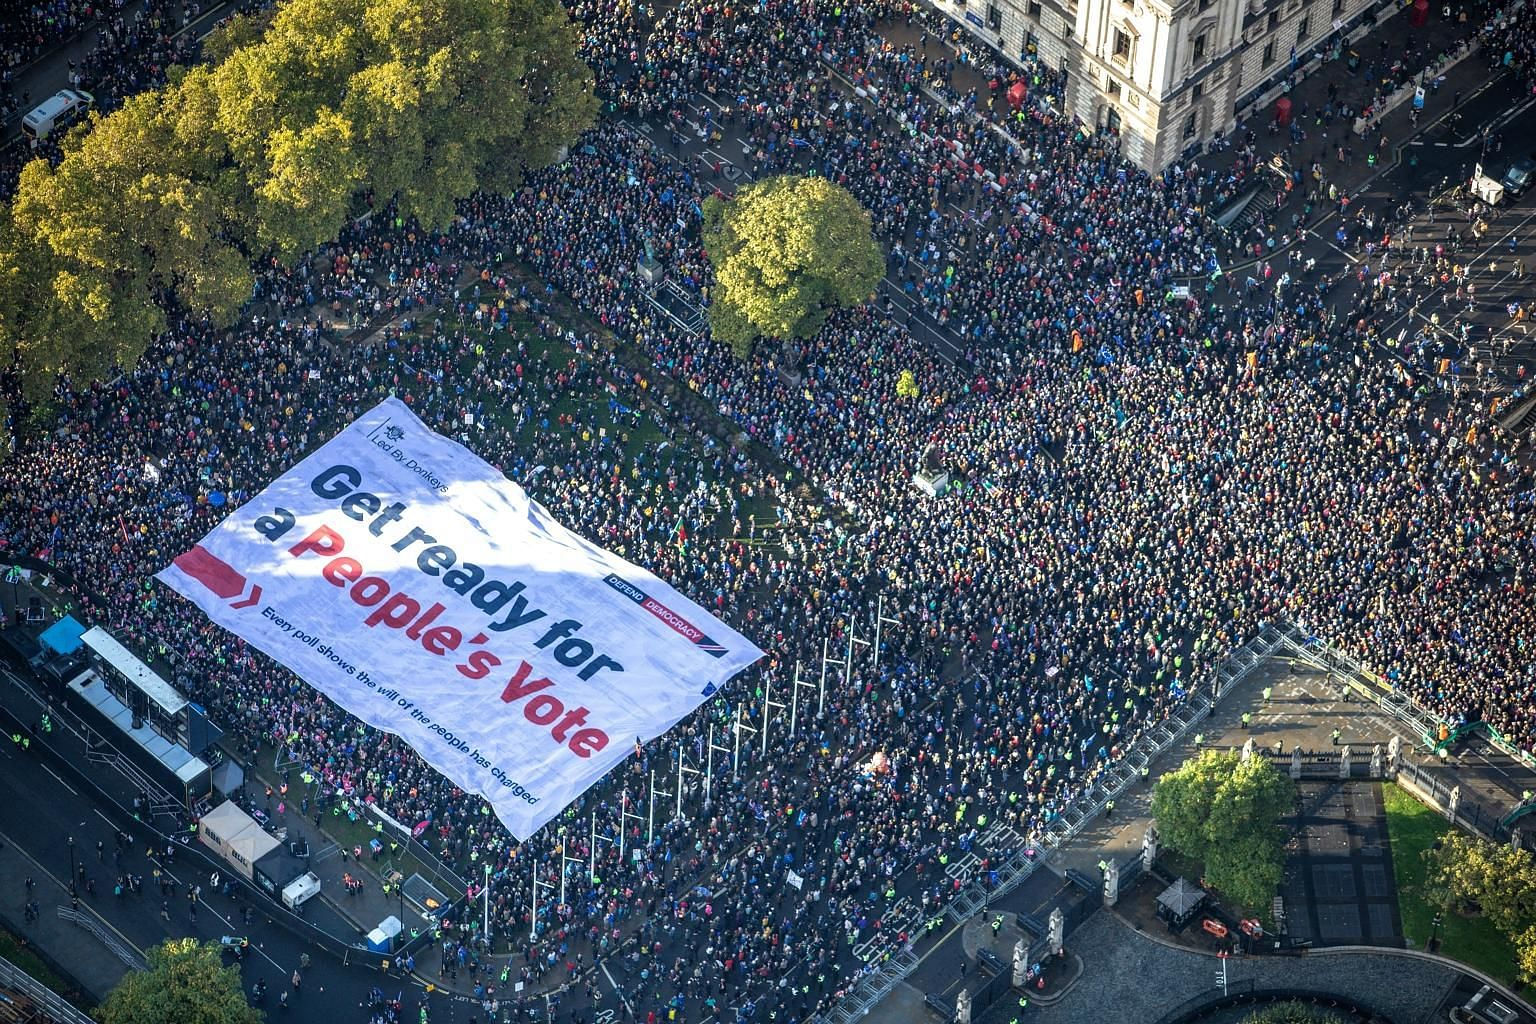 An aerial view of a section of the crowd of thousands who marched to Parliament Square in London on Saturday demanding a people's vote on the Brexit deal. PHOTO: REUTERS